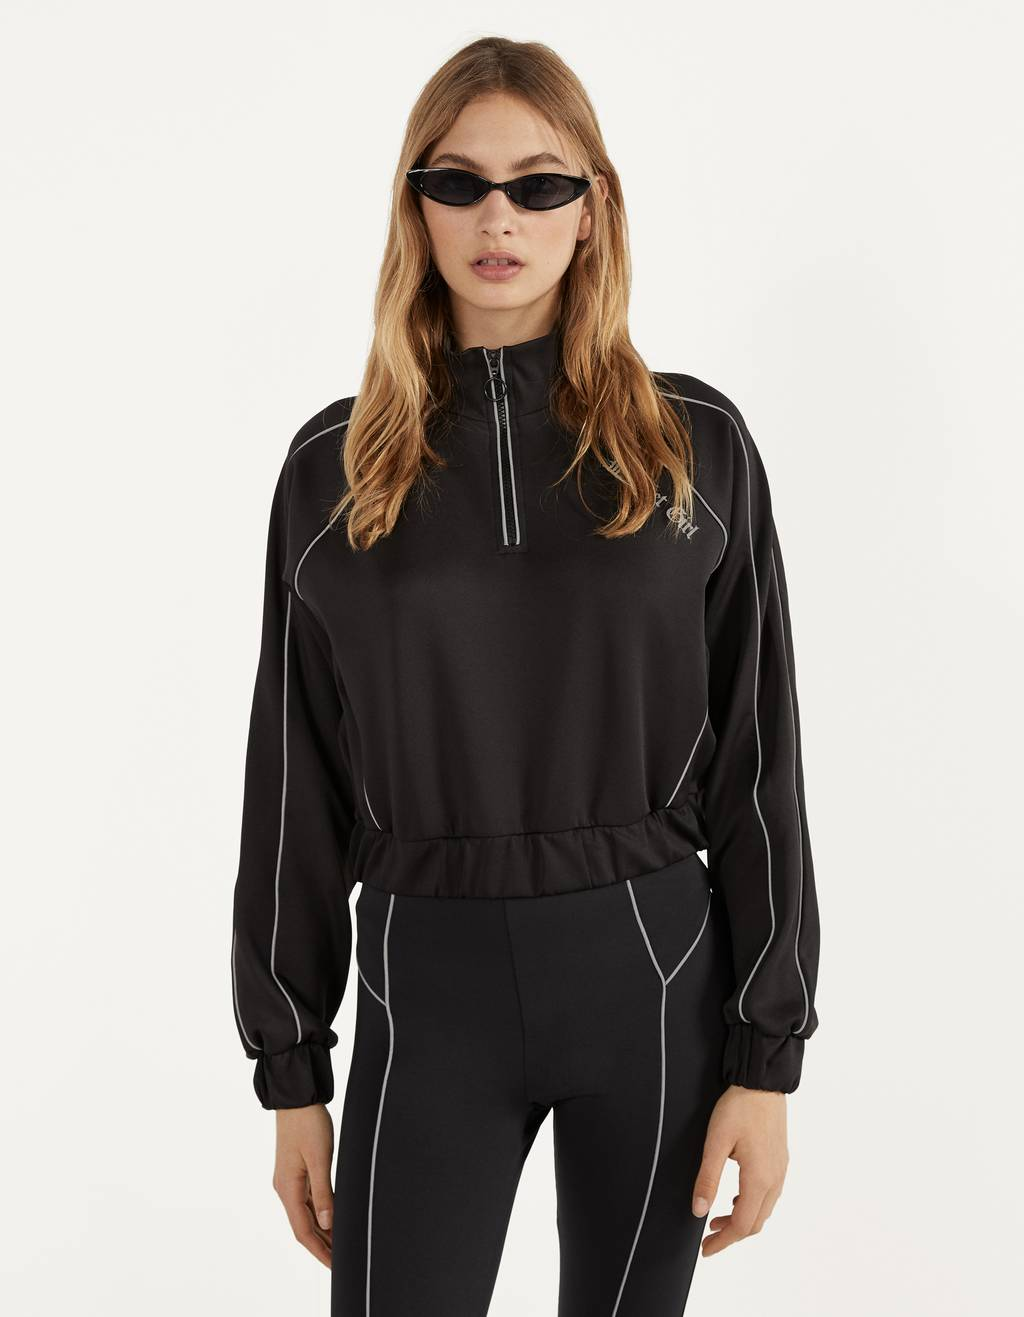 Sweatshirt with reflective detail